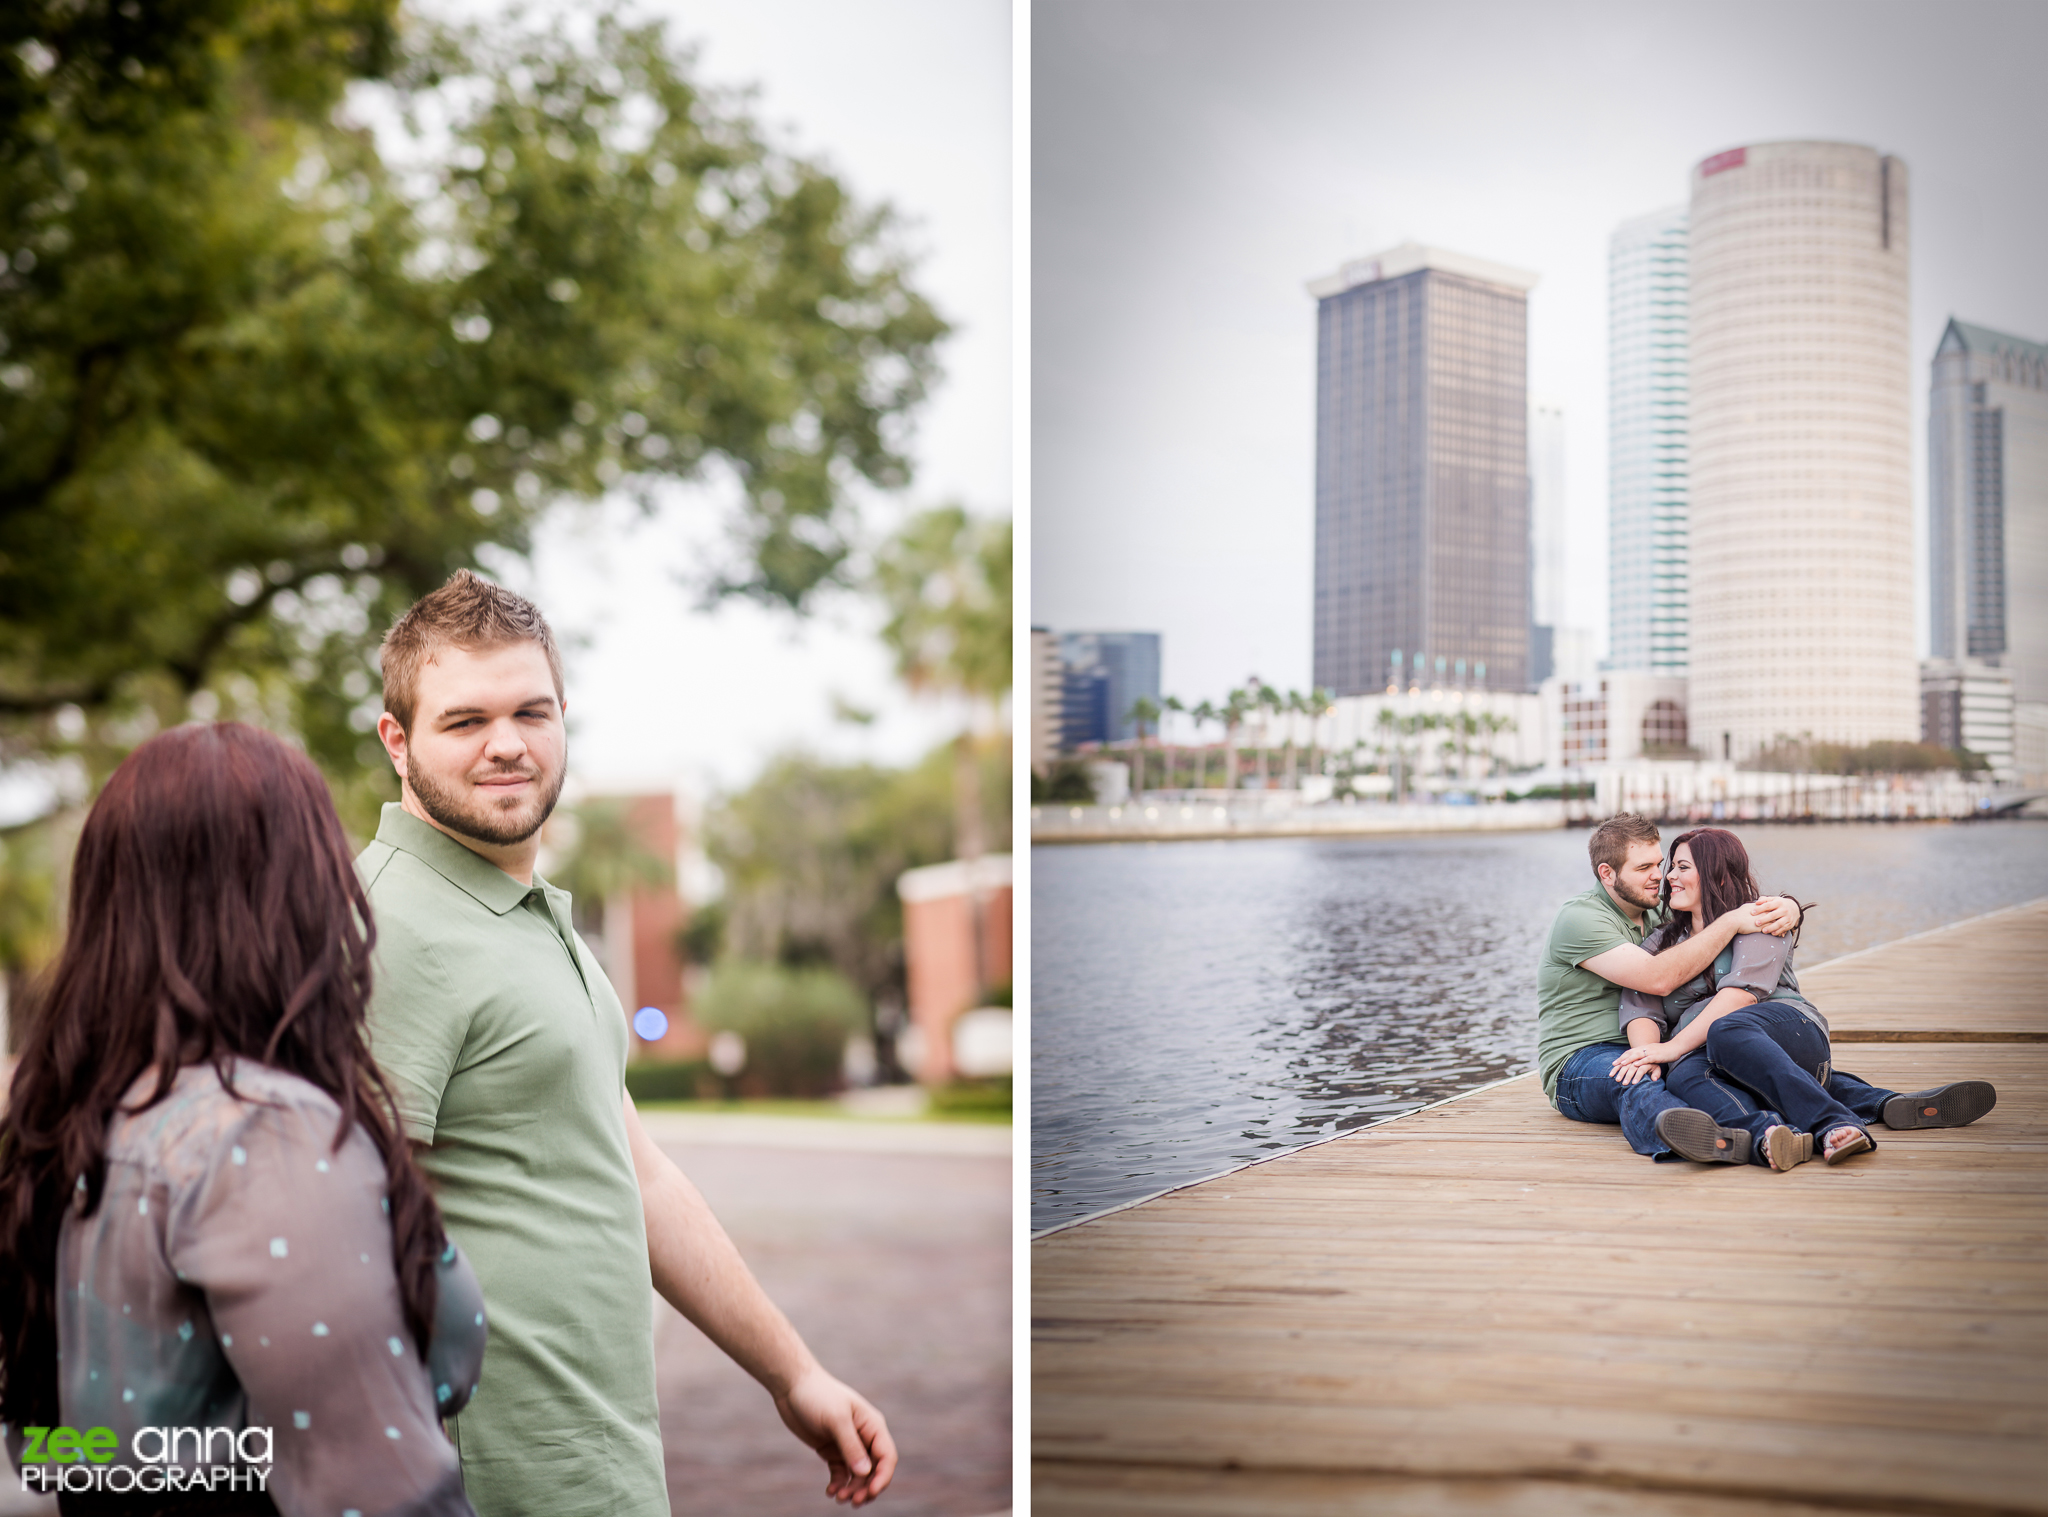 UniversityTampaEngagement-DowntownTampaEngagement-Cody+Ashley-2